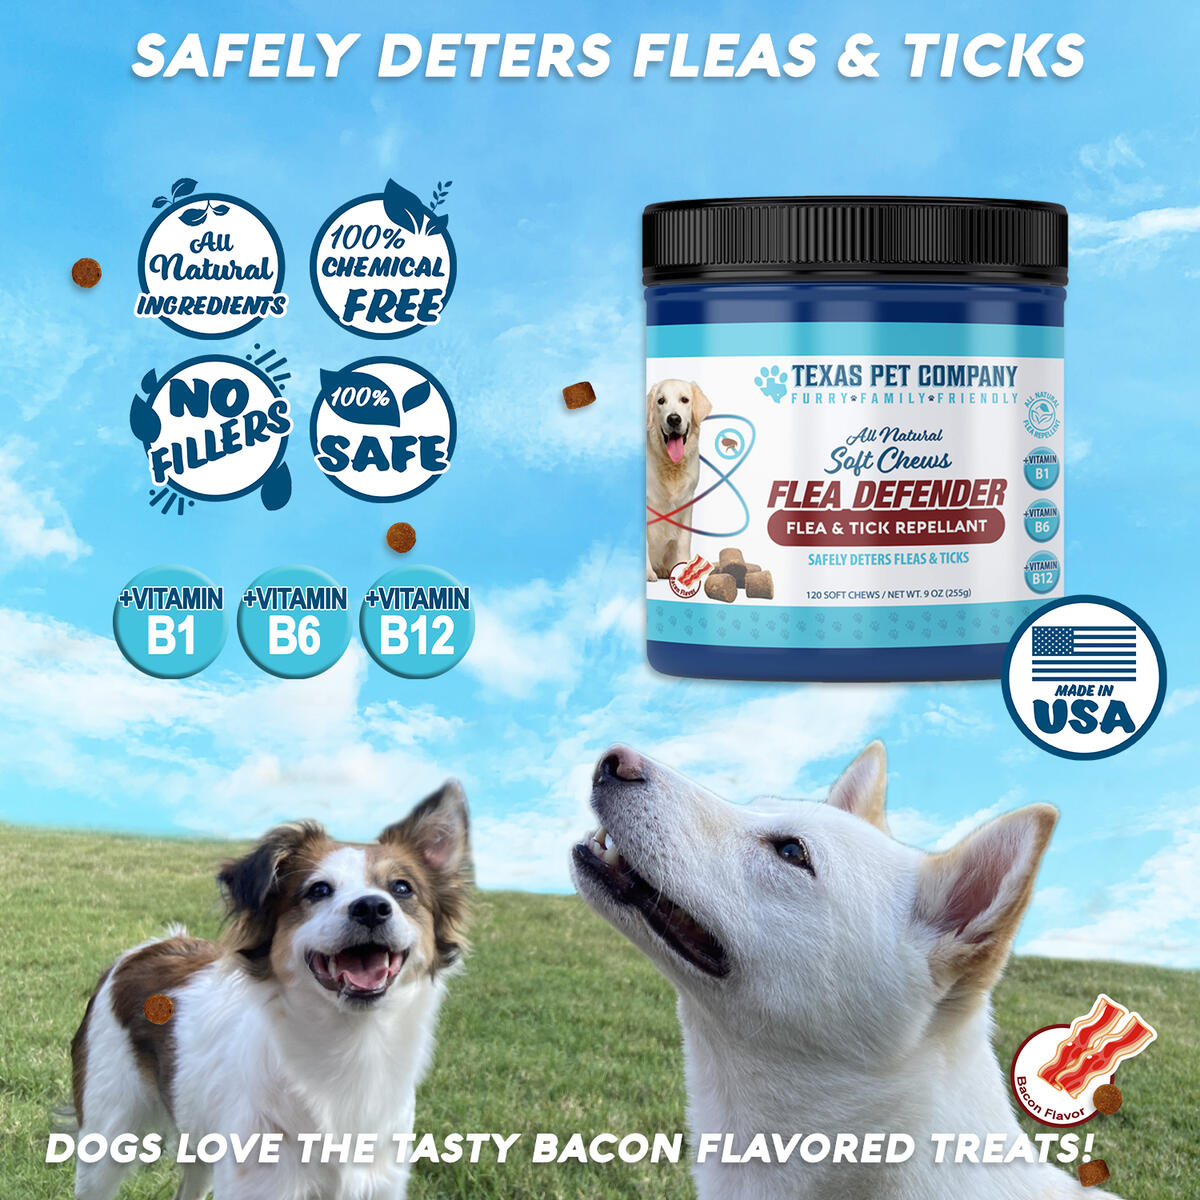 Texas Pet Company Flea and Tick Prevention for Dogs Flea Treatment All Natural Repellent Soft Chews for Dogs-Made in USA - Bacon Flavor 120 Ct 9oz